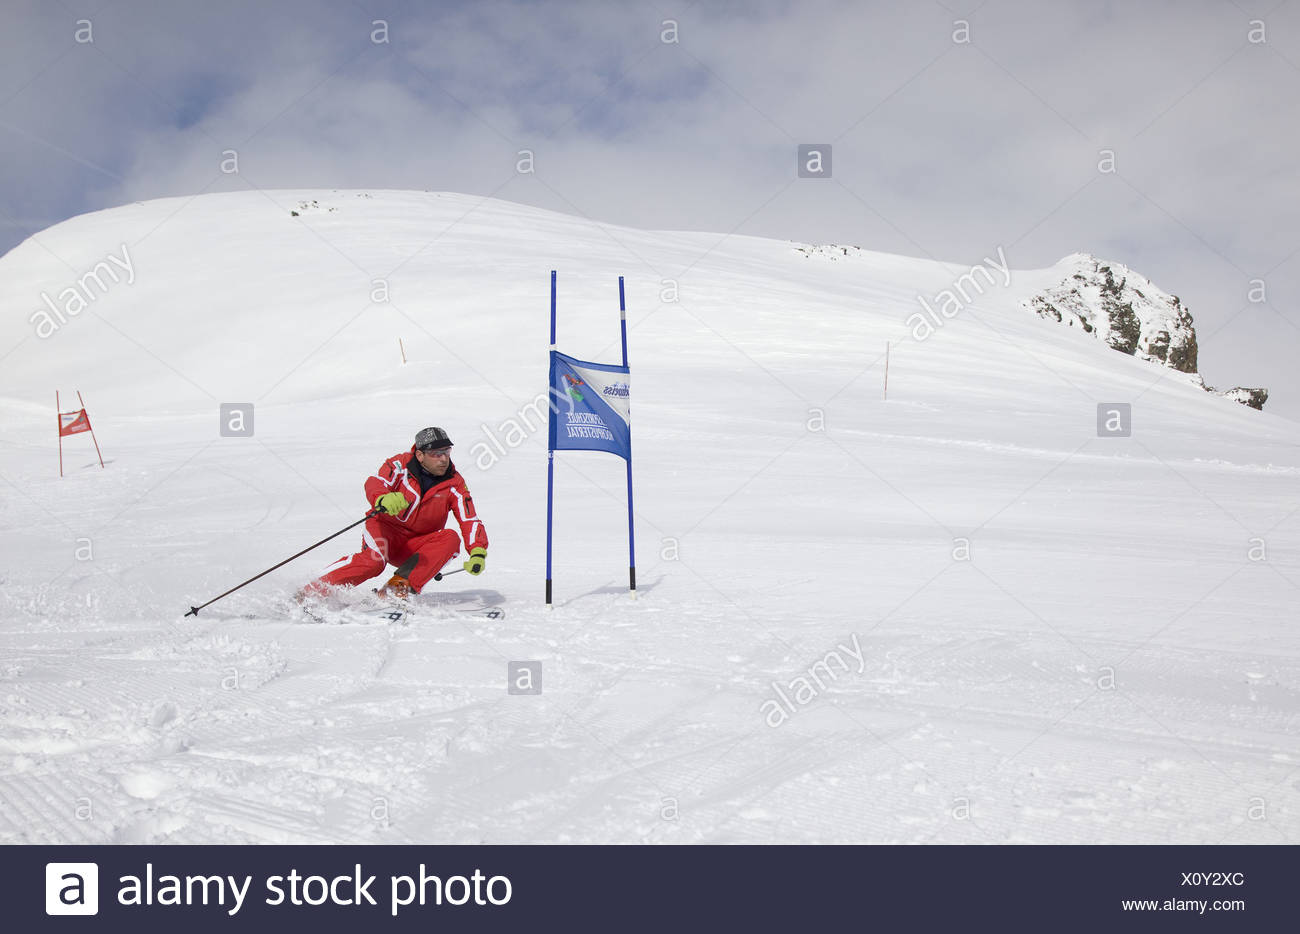 Skiing Stock Photo